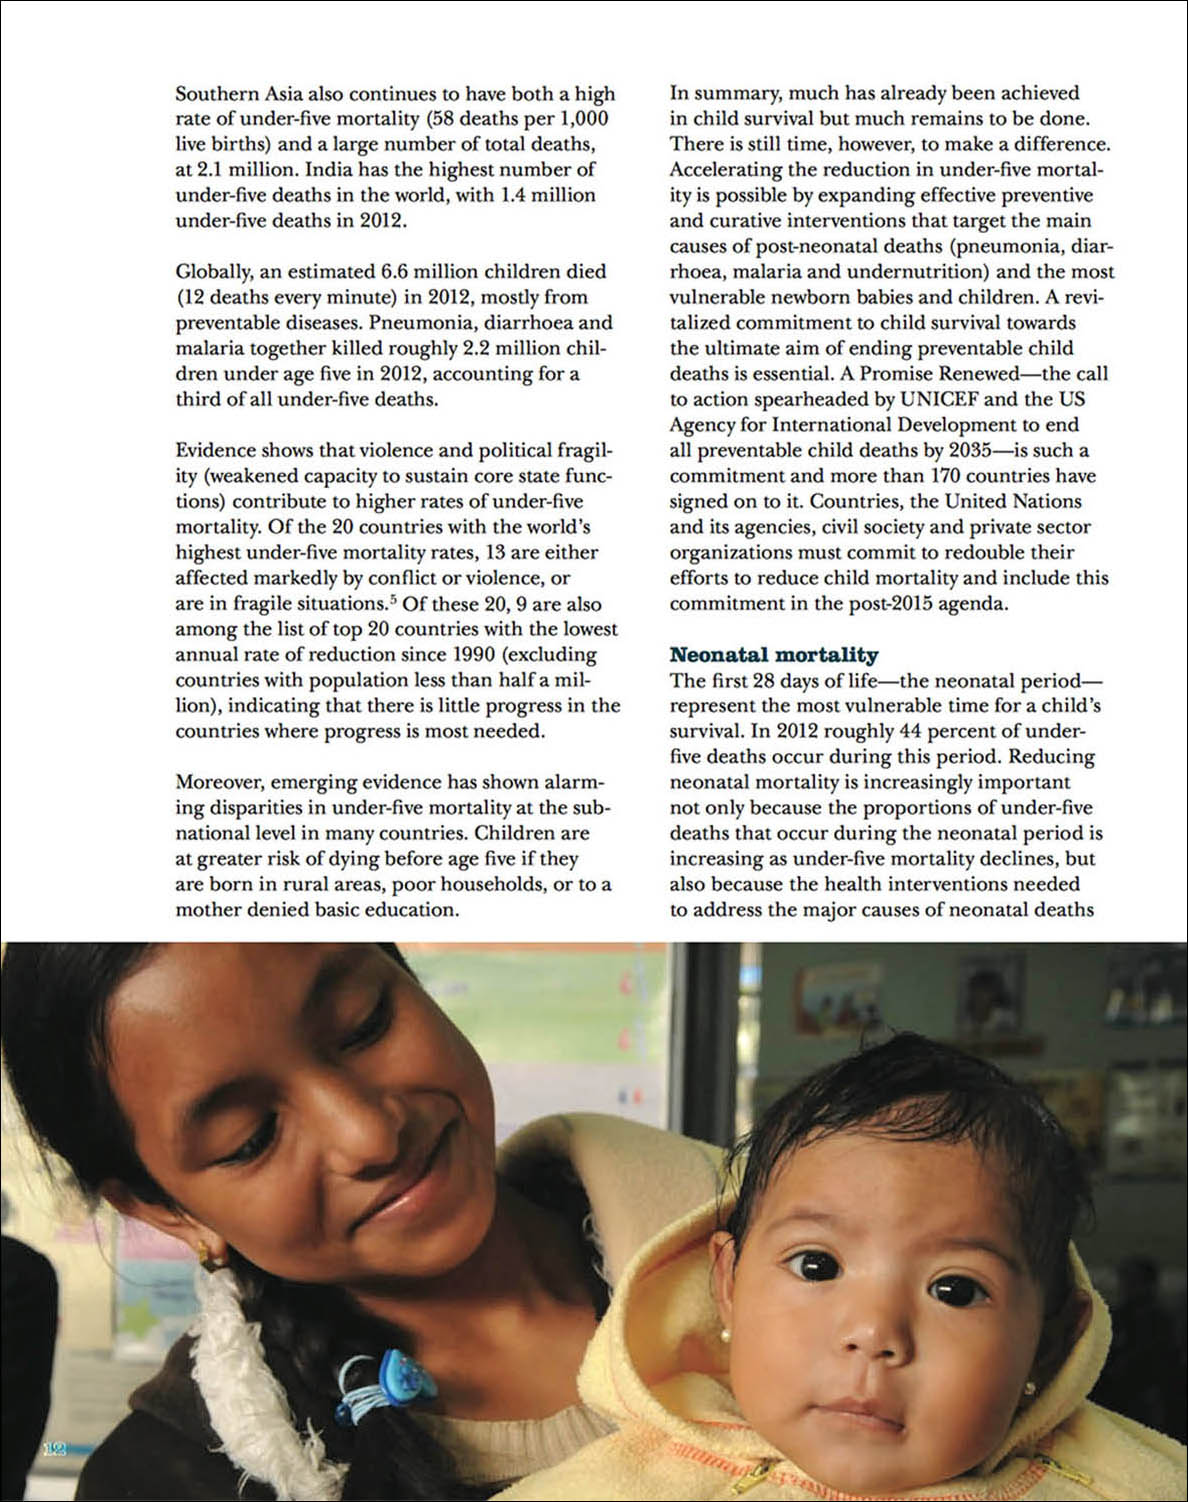 Screen capture/tearsheet showing a young mother holding her infant daughter.